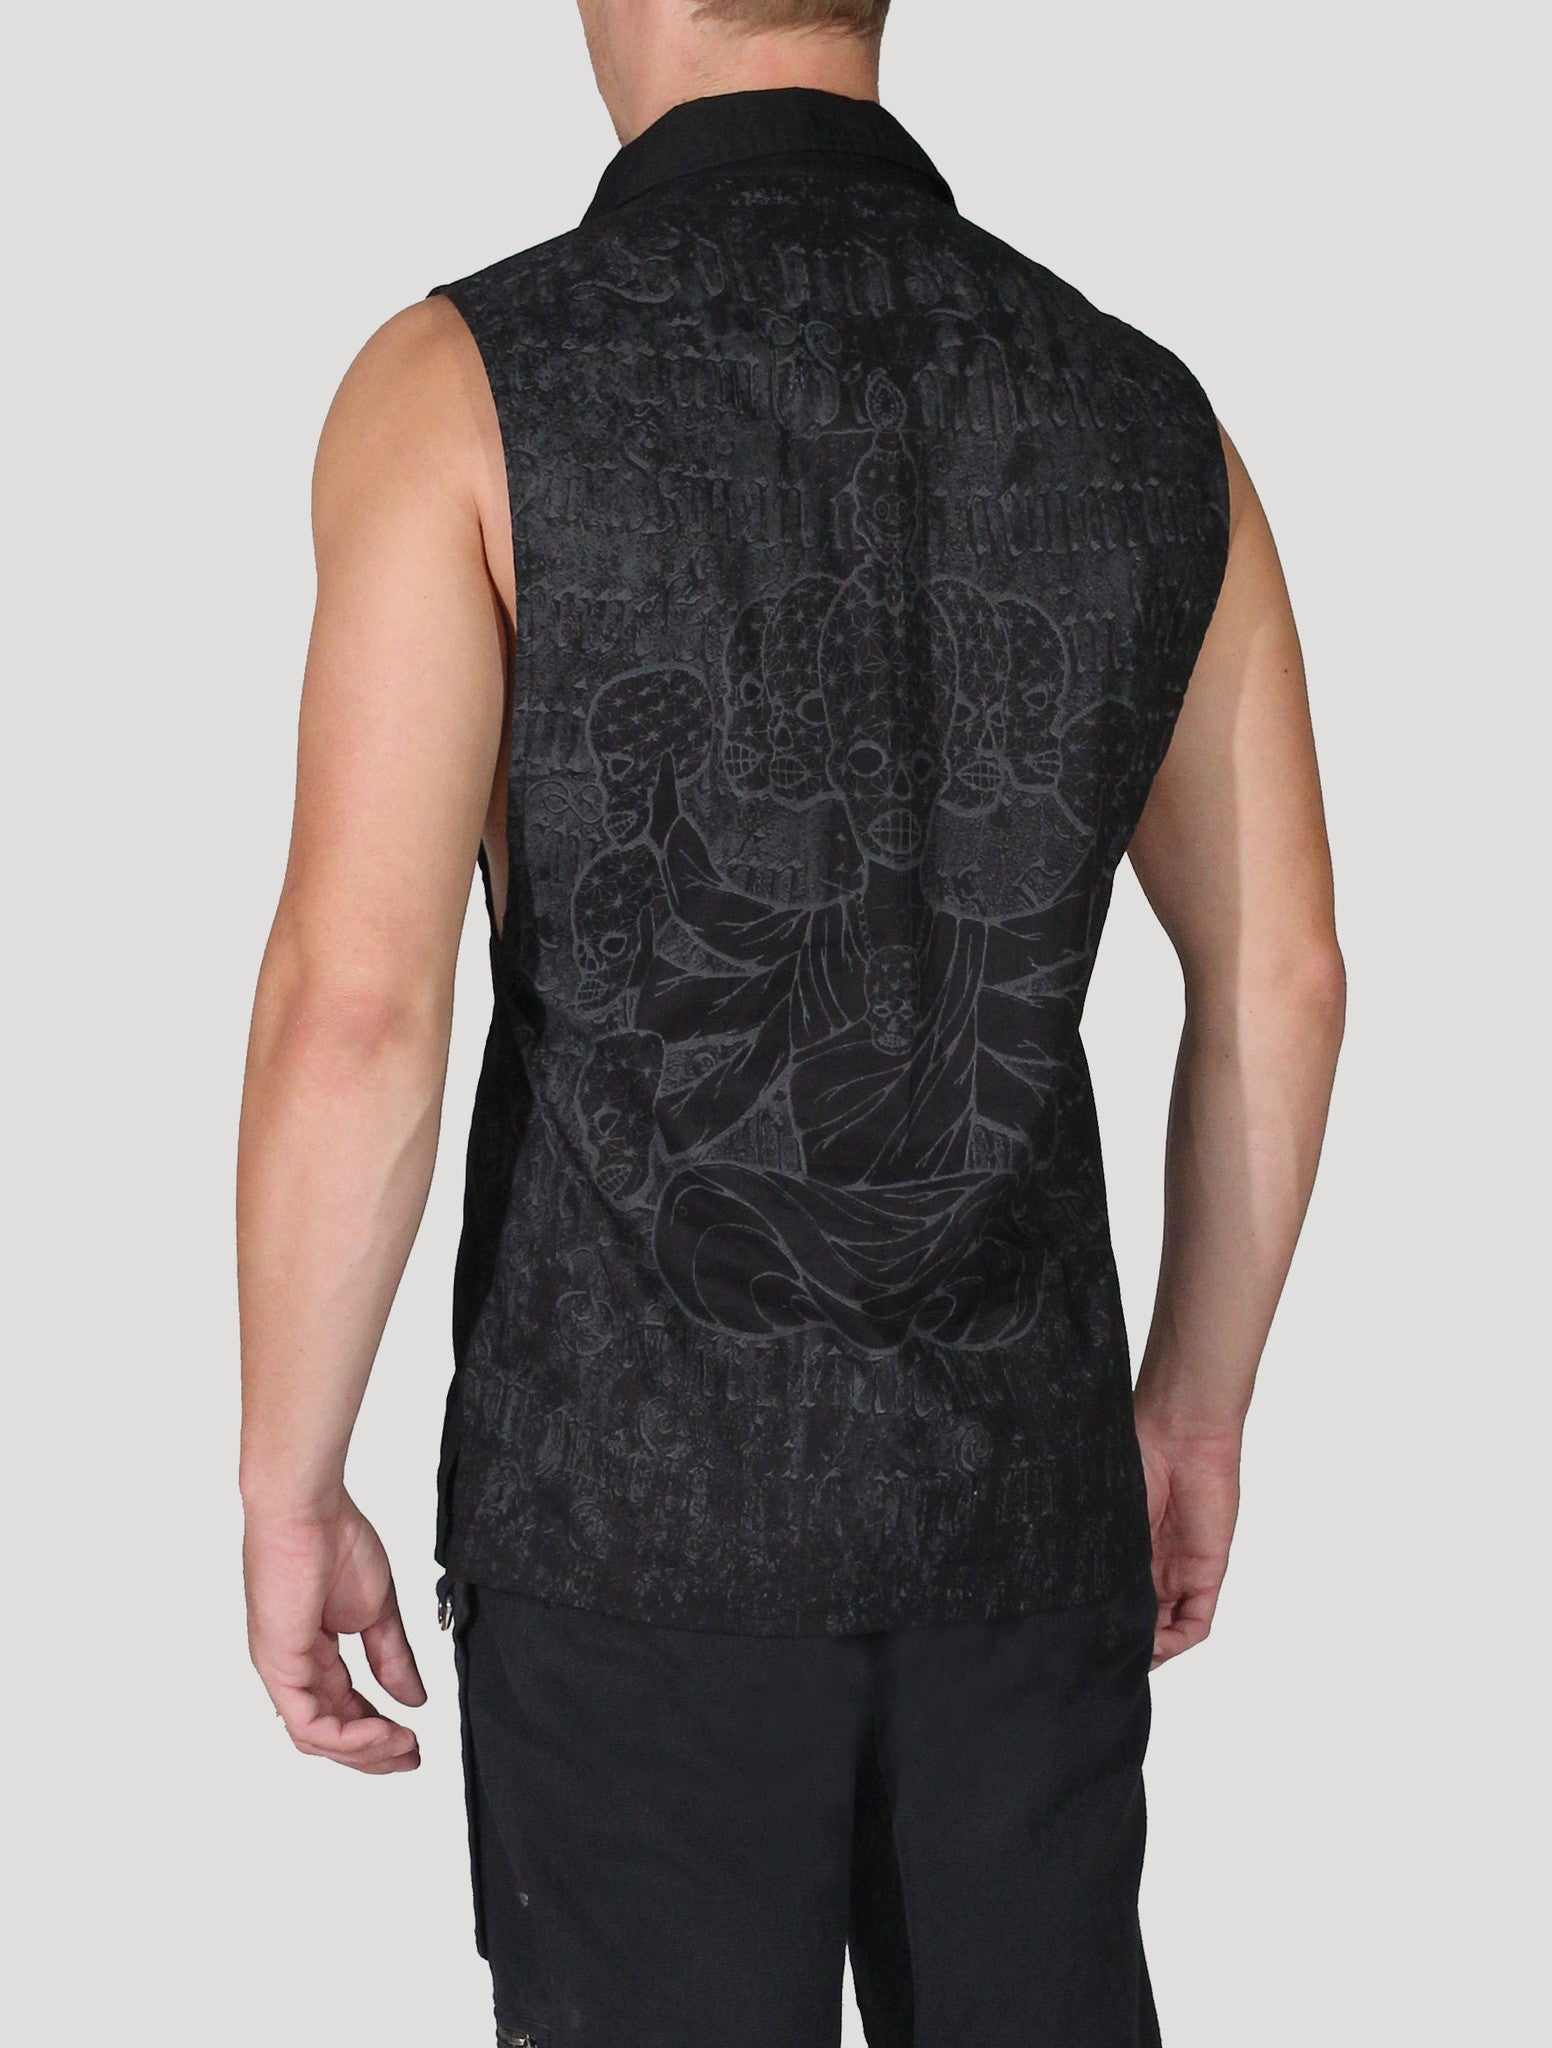 Crystal Skulls Sleeveless Shirt